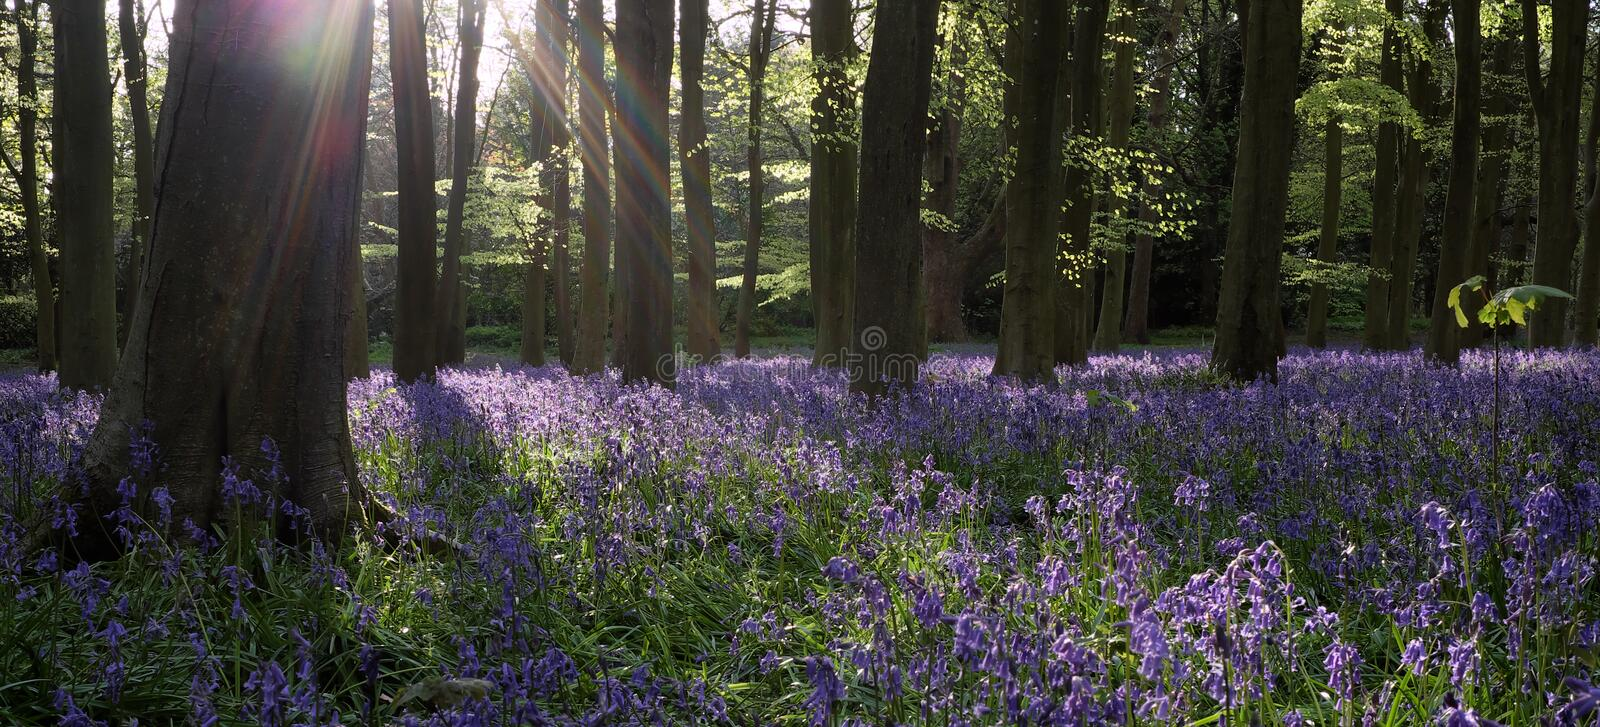 Bluebell Woods. Bluebell Flowers in the woods stock photography